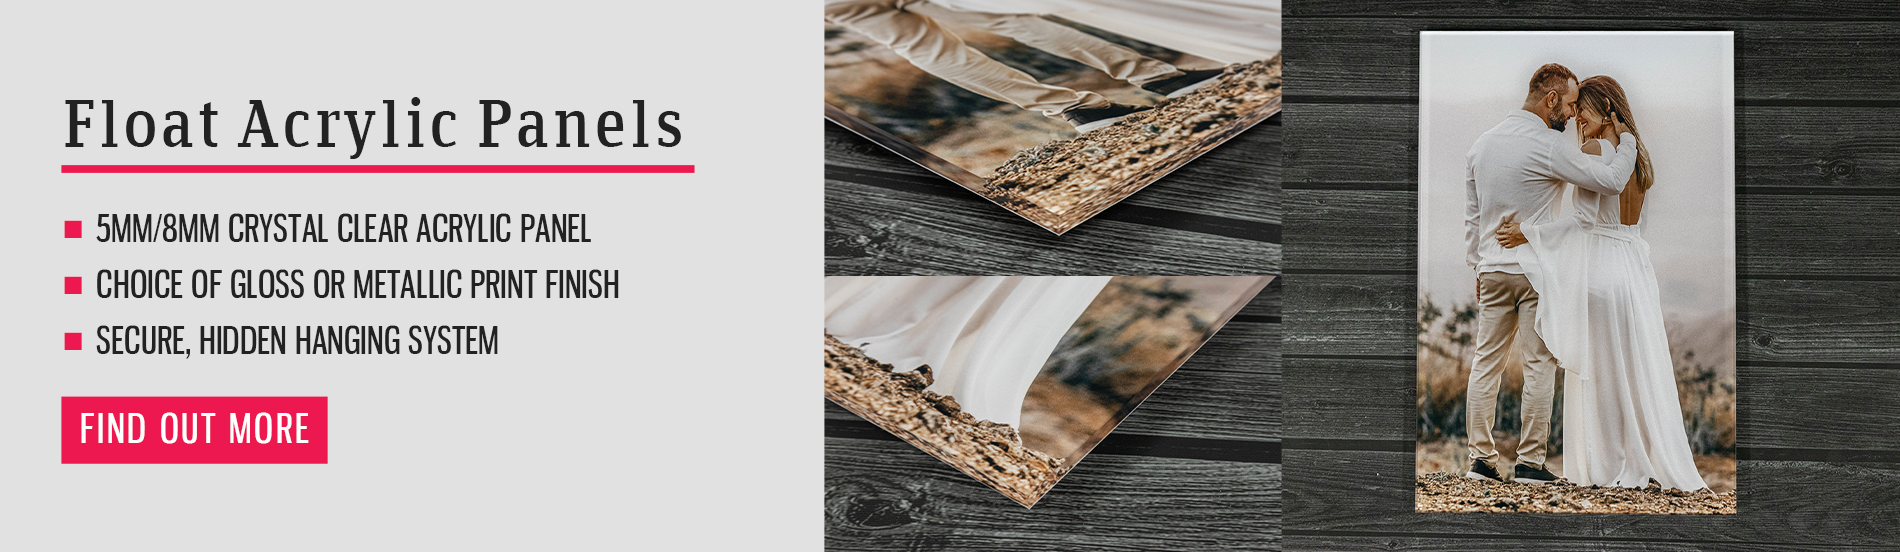 acrylic photo panels banner